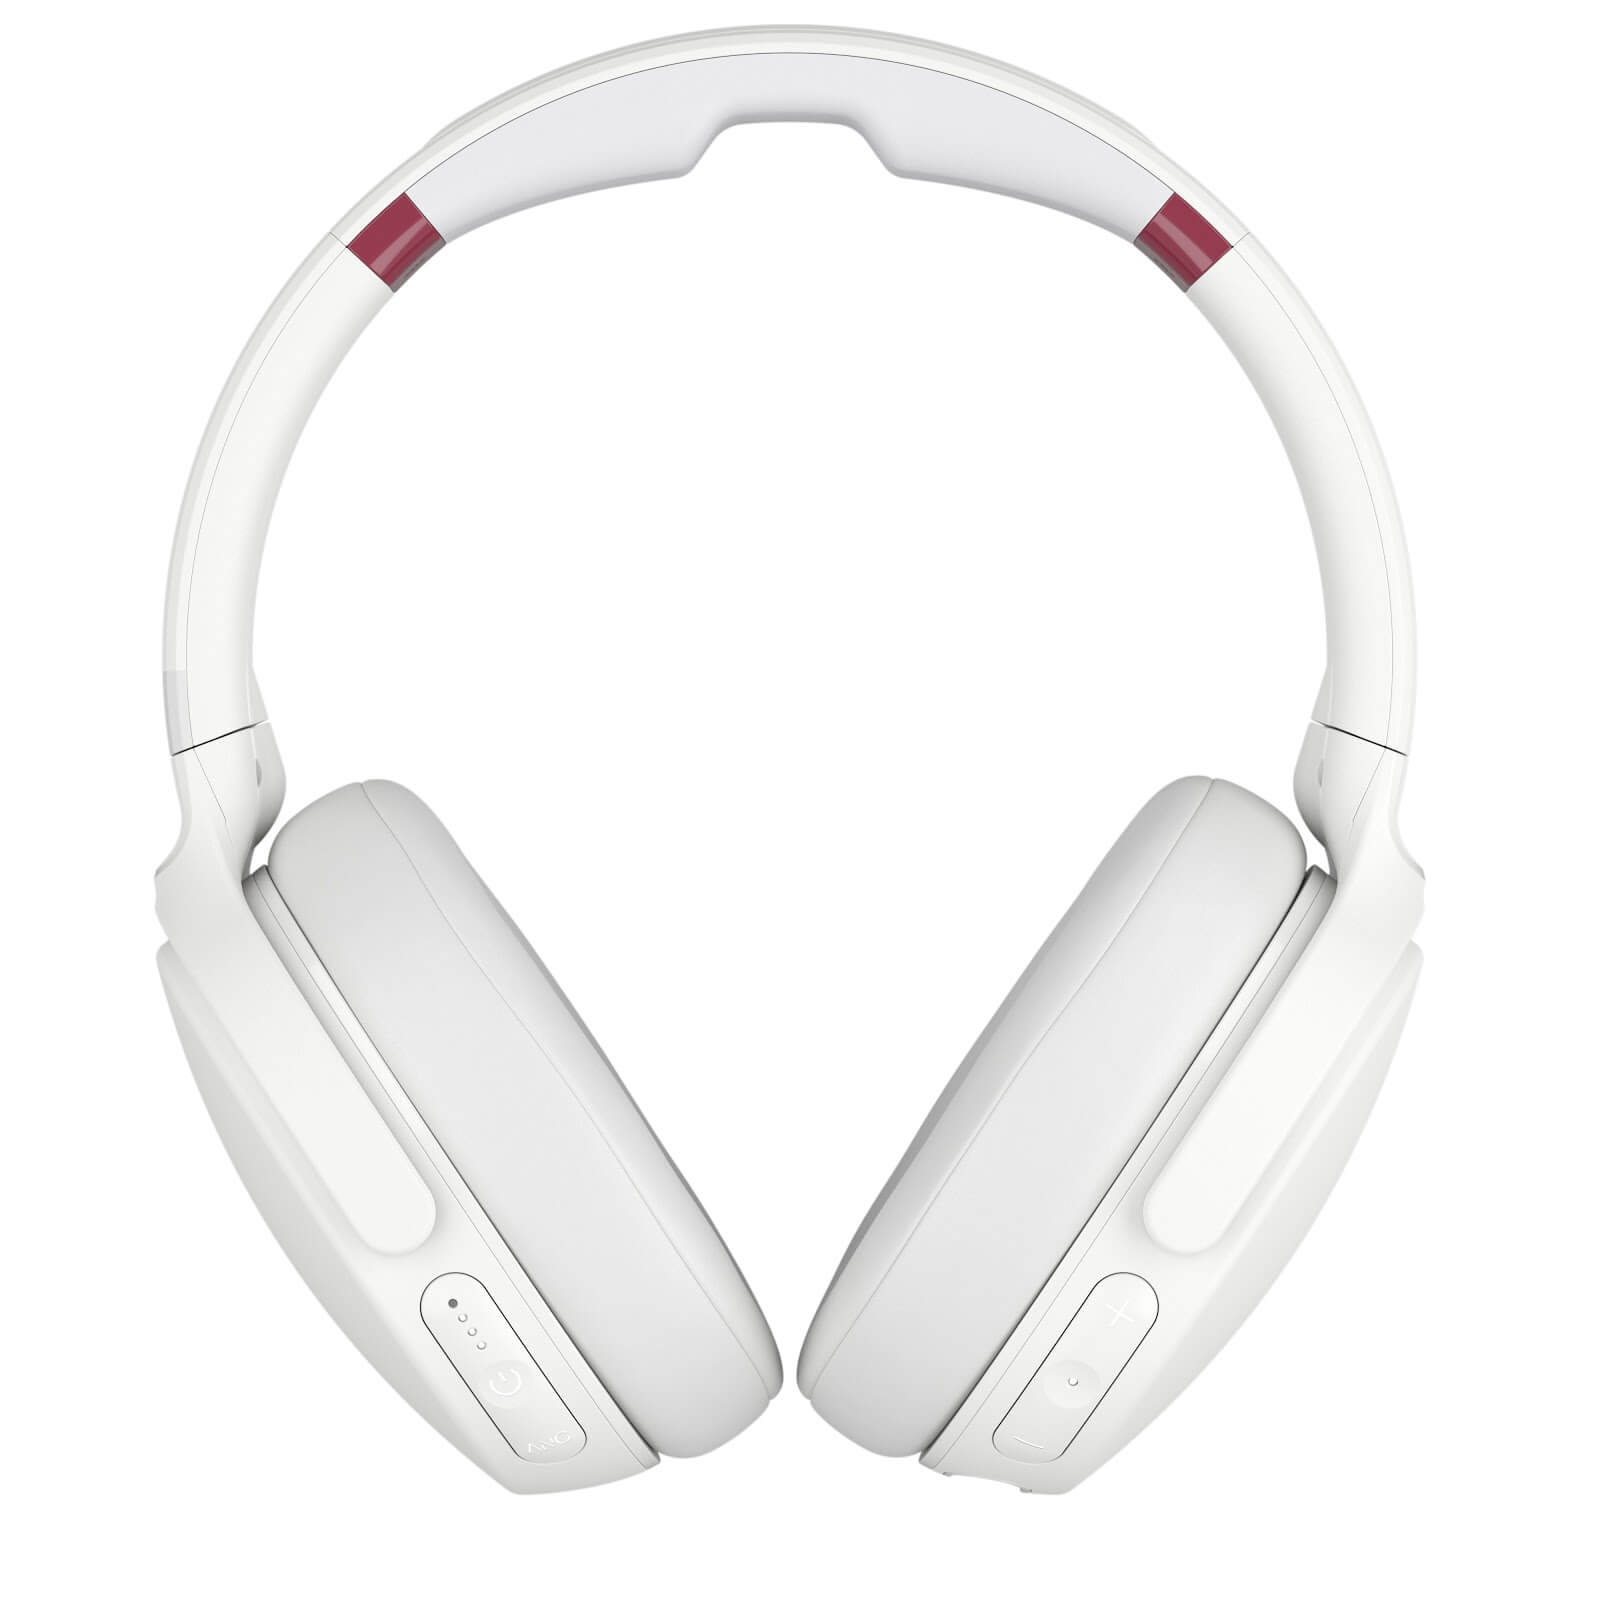 Skullcandy Venue Noise Canceling Wireless Headphones